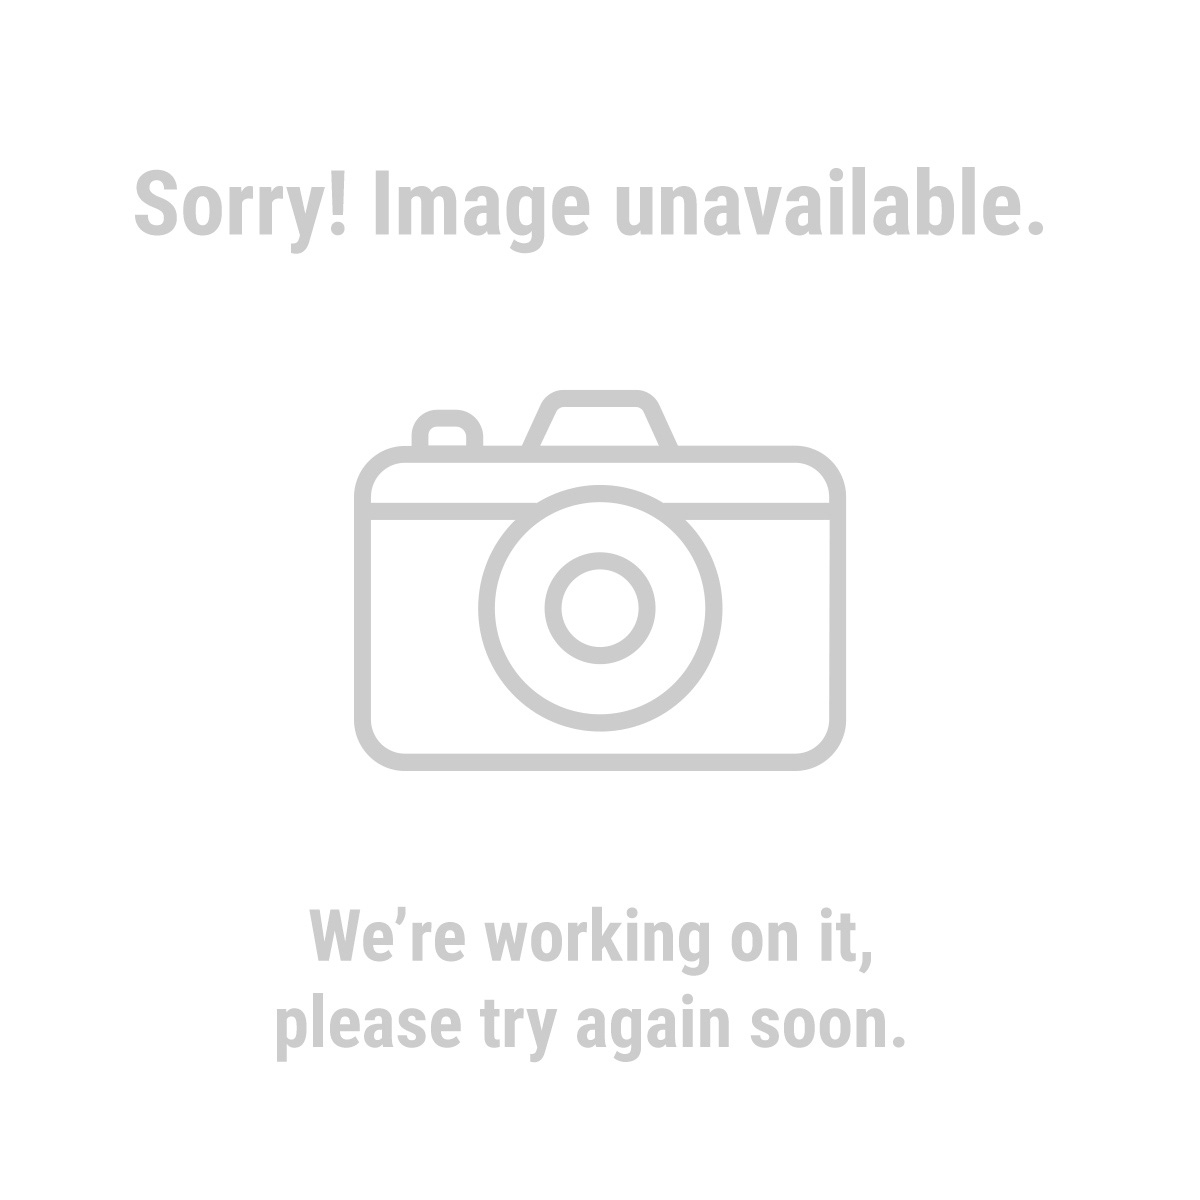 Storehouse 69409 1000 Piece Assorted Cable Ties